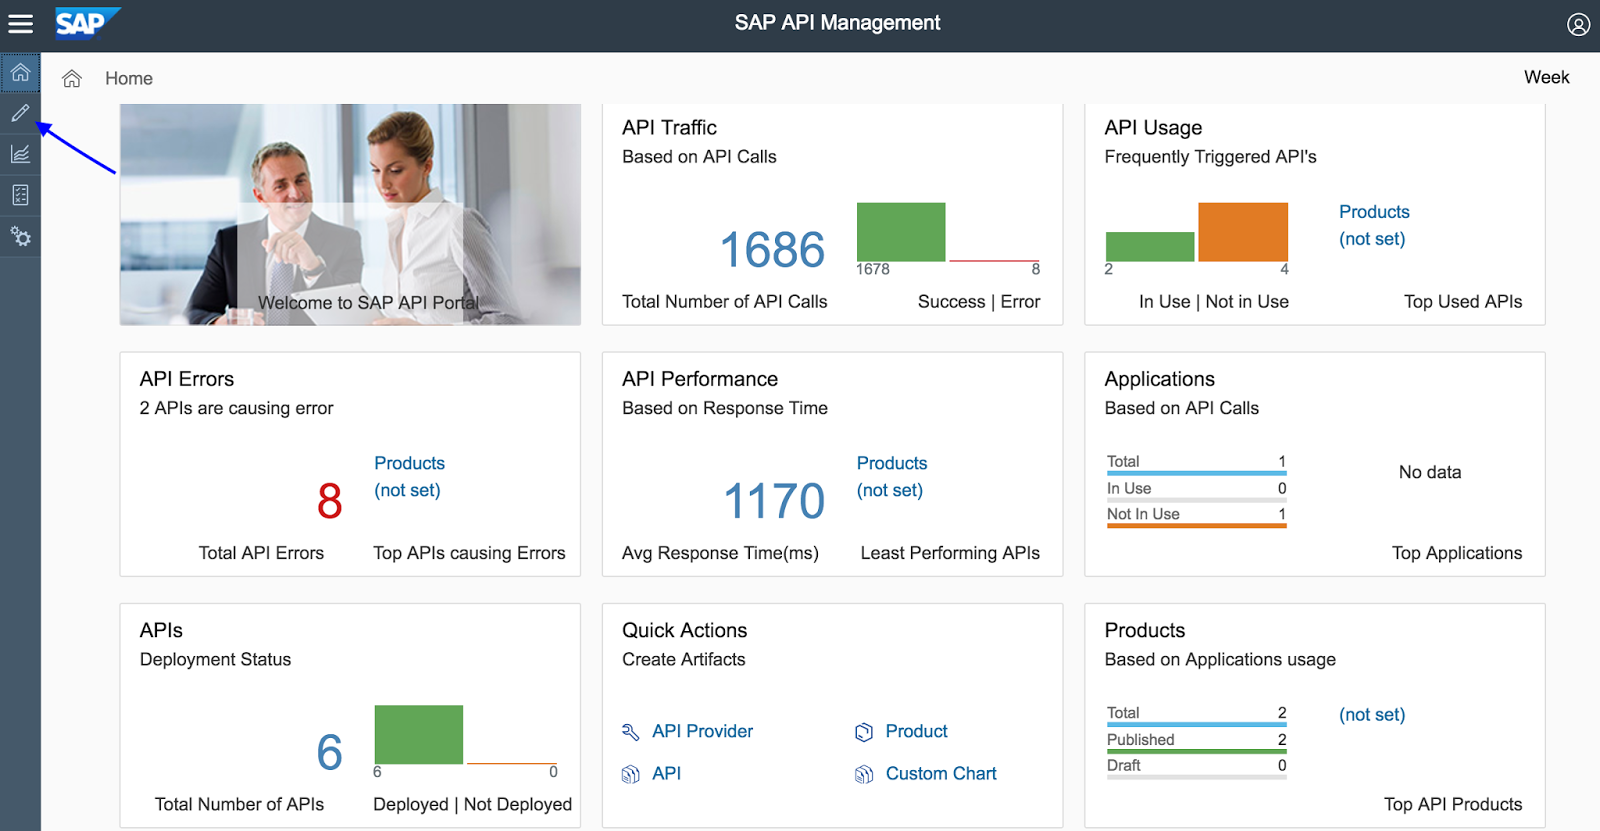 How to consume an On-Premise REST service via SAP API Management and